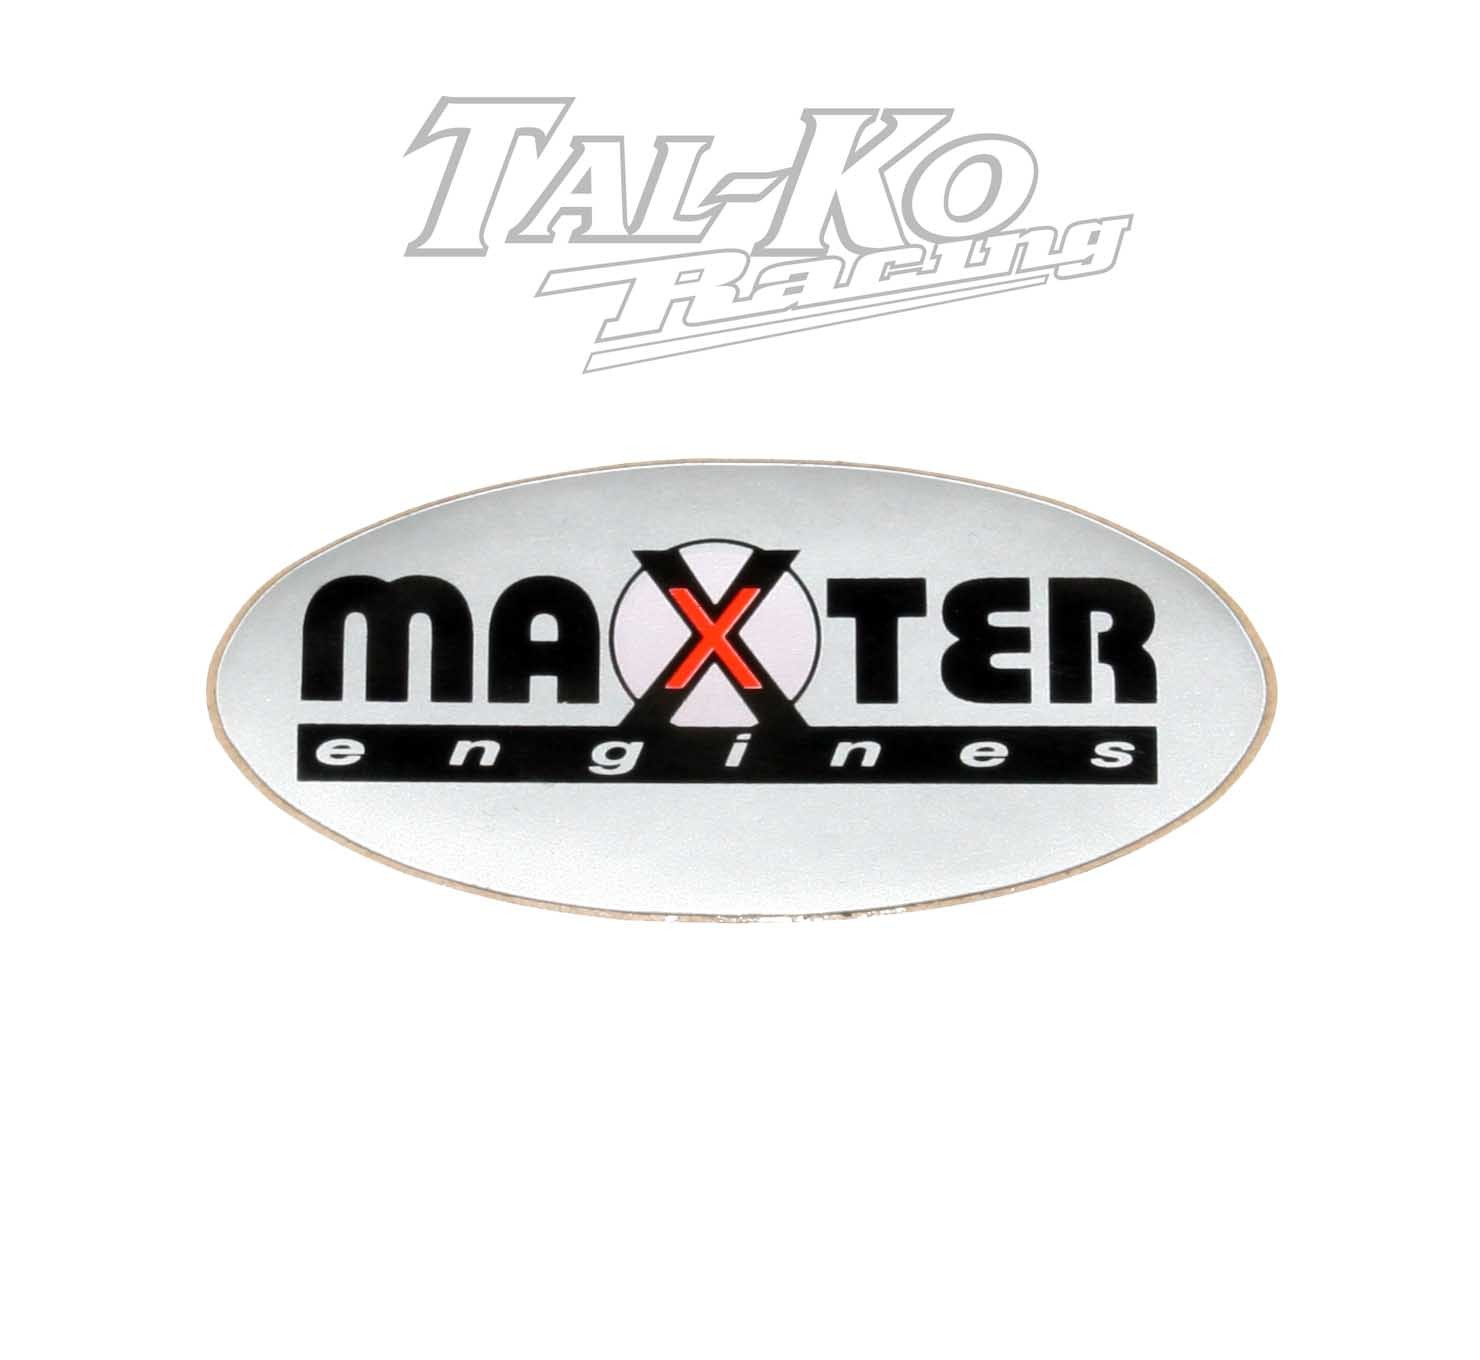 MAXTER ENGINE STICKER DECAL 82 x 38